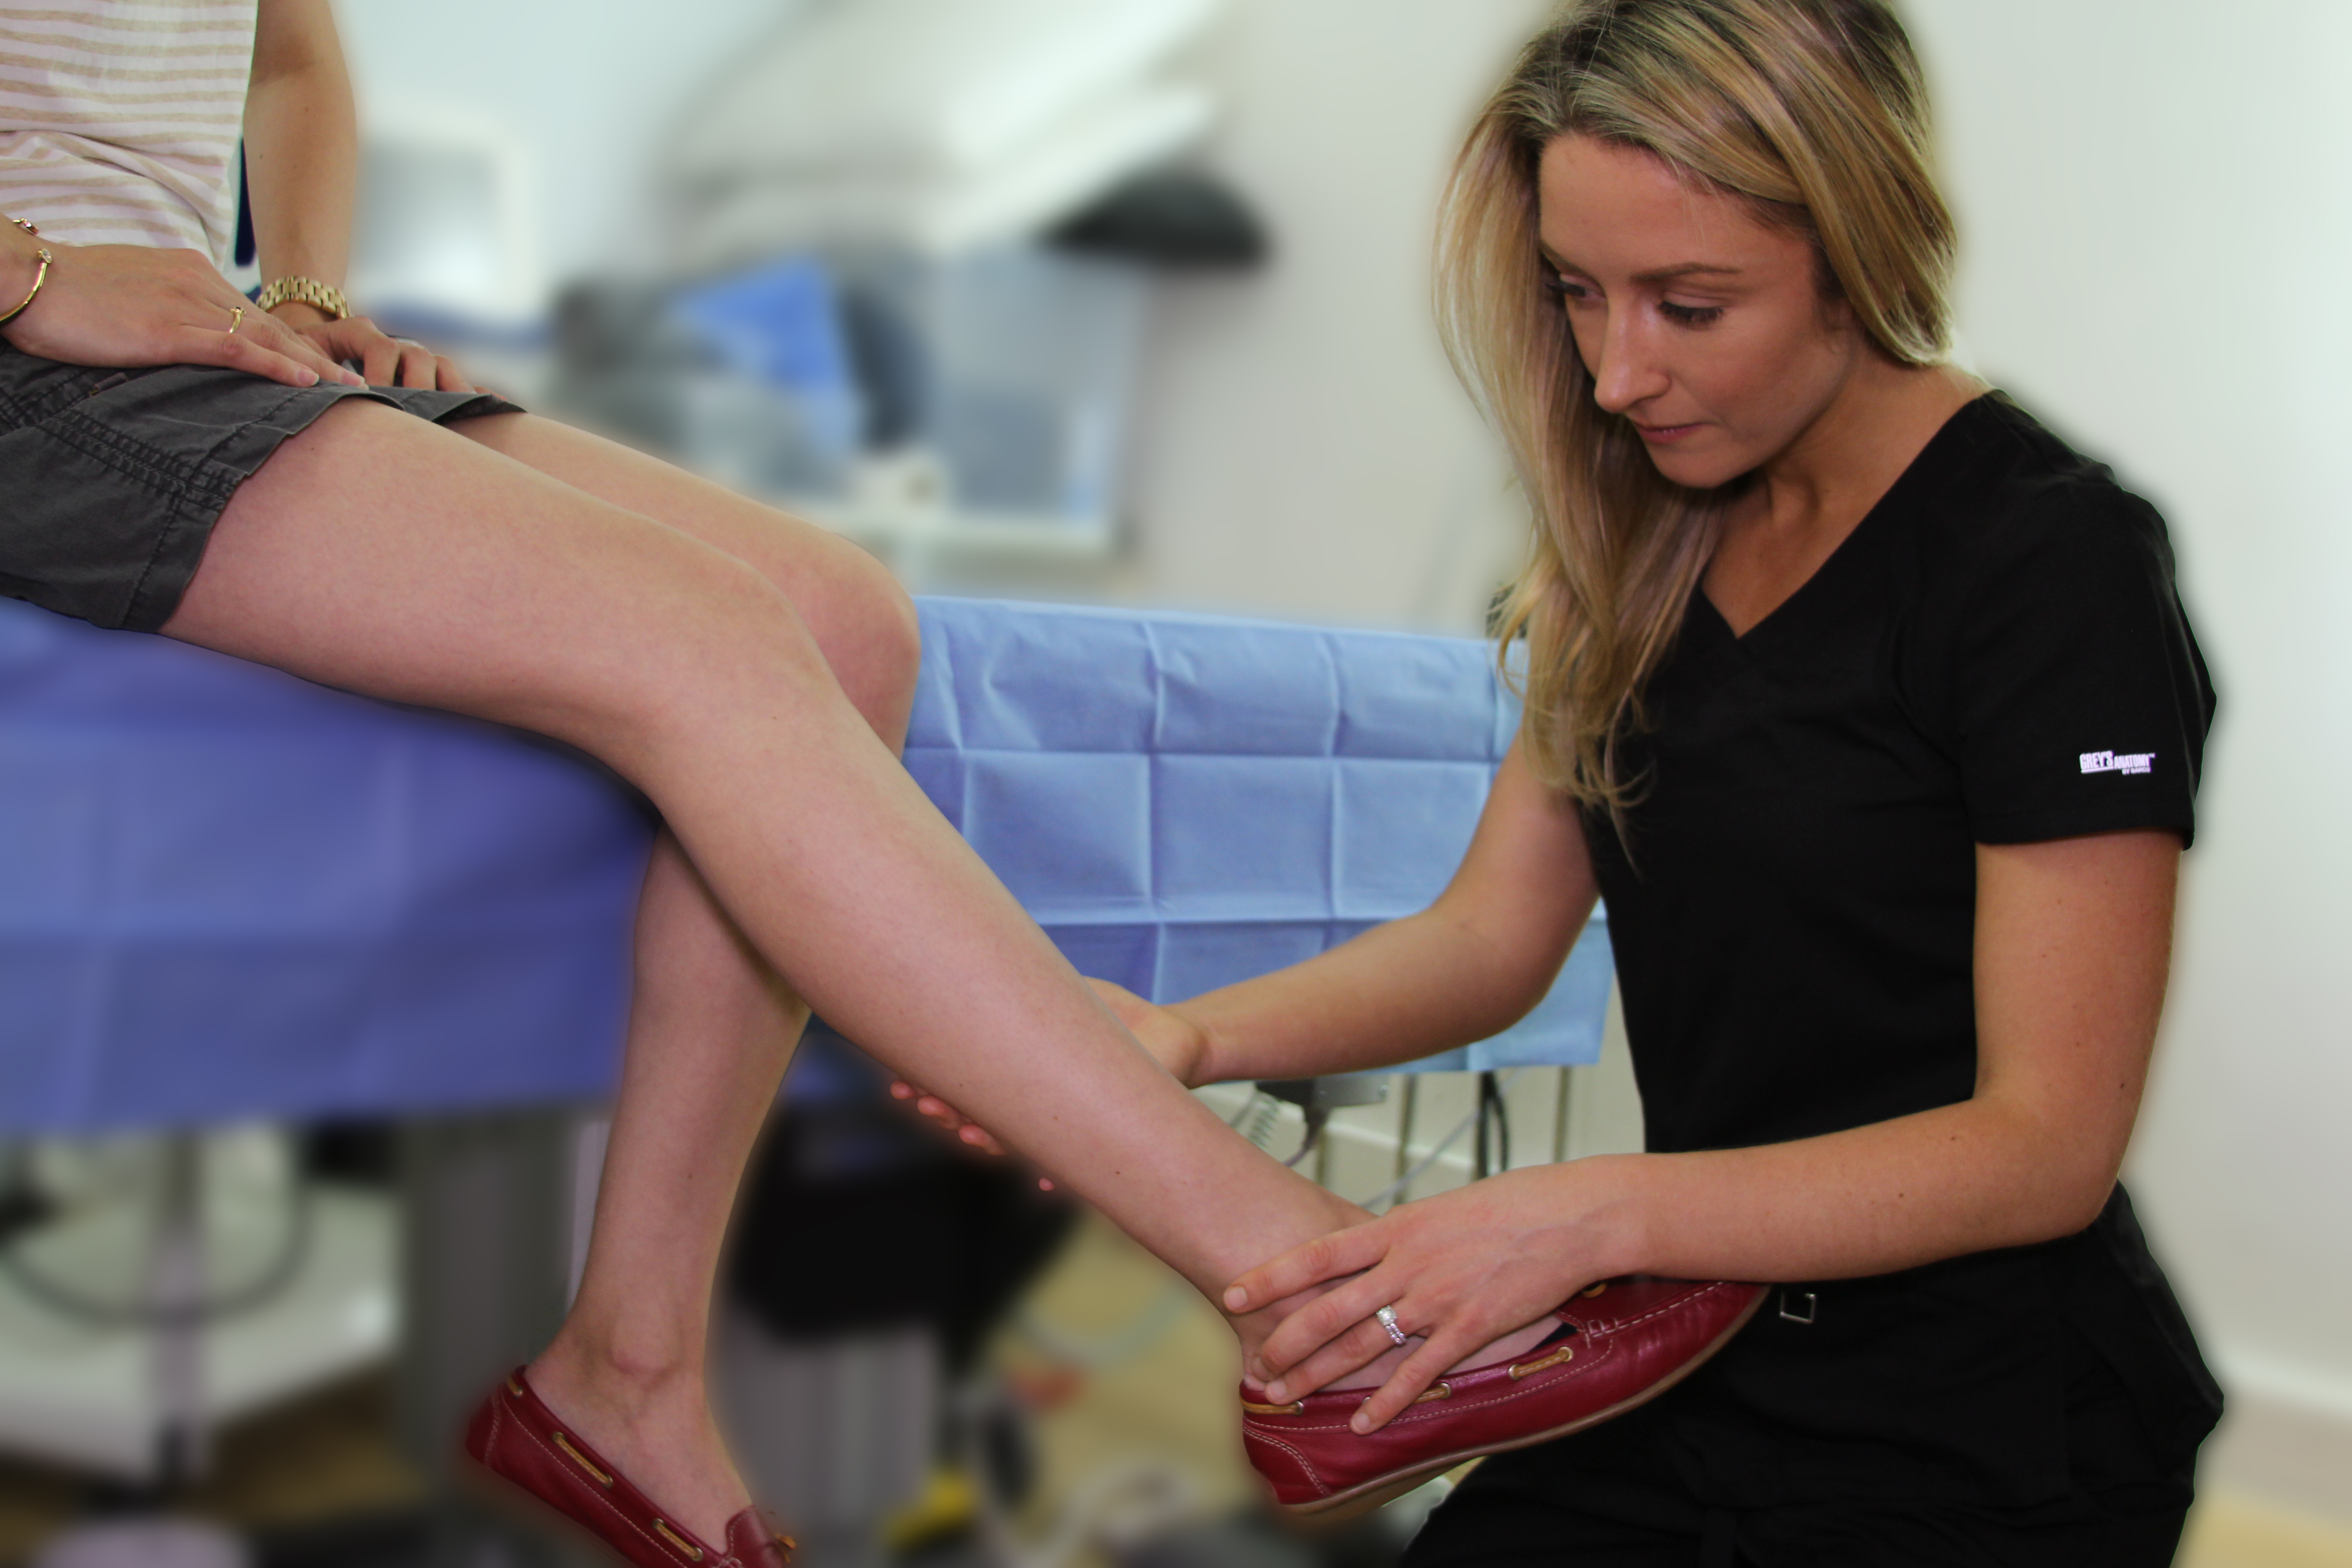 How to Prevent Spider Veins? Dr. Novak from Paramus Vein Treatment Clinic during a spider vein evaluation.